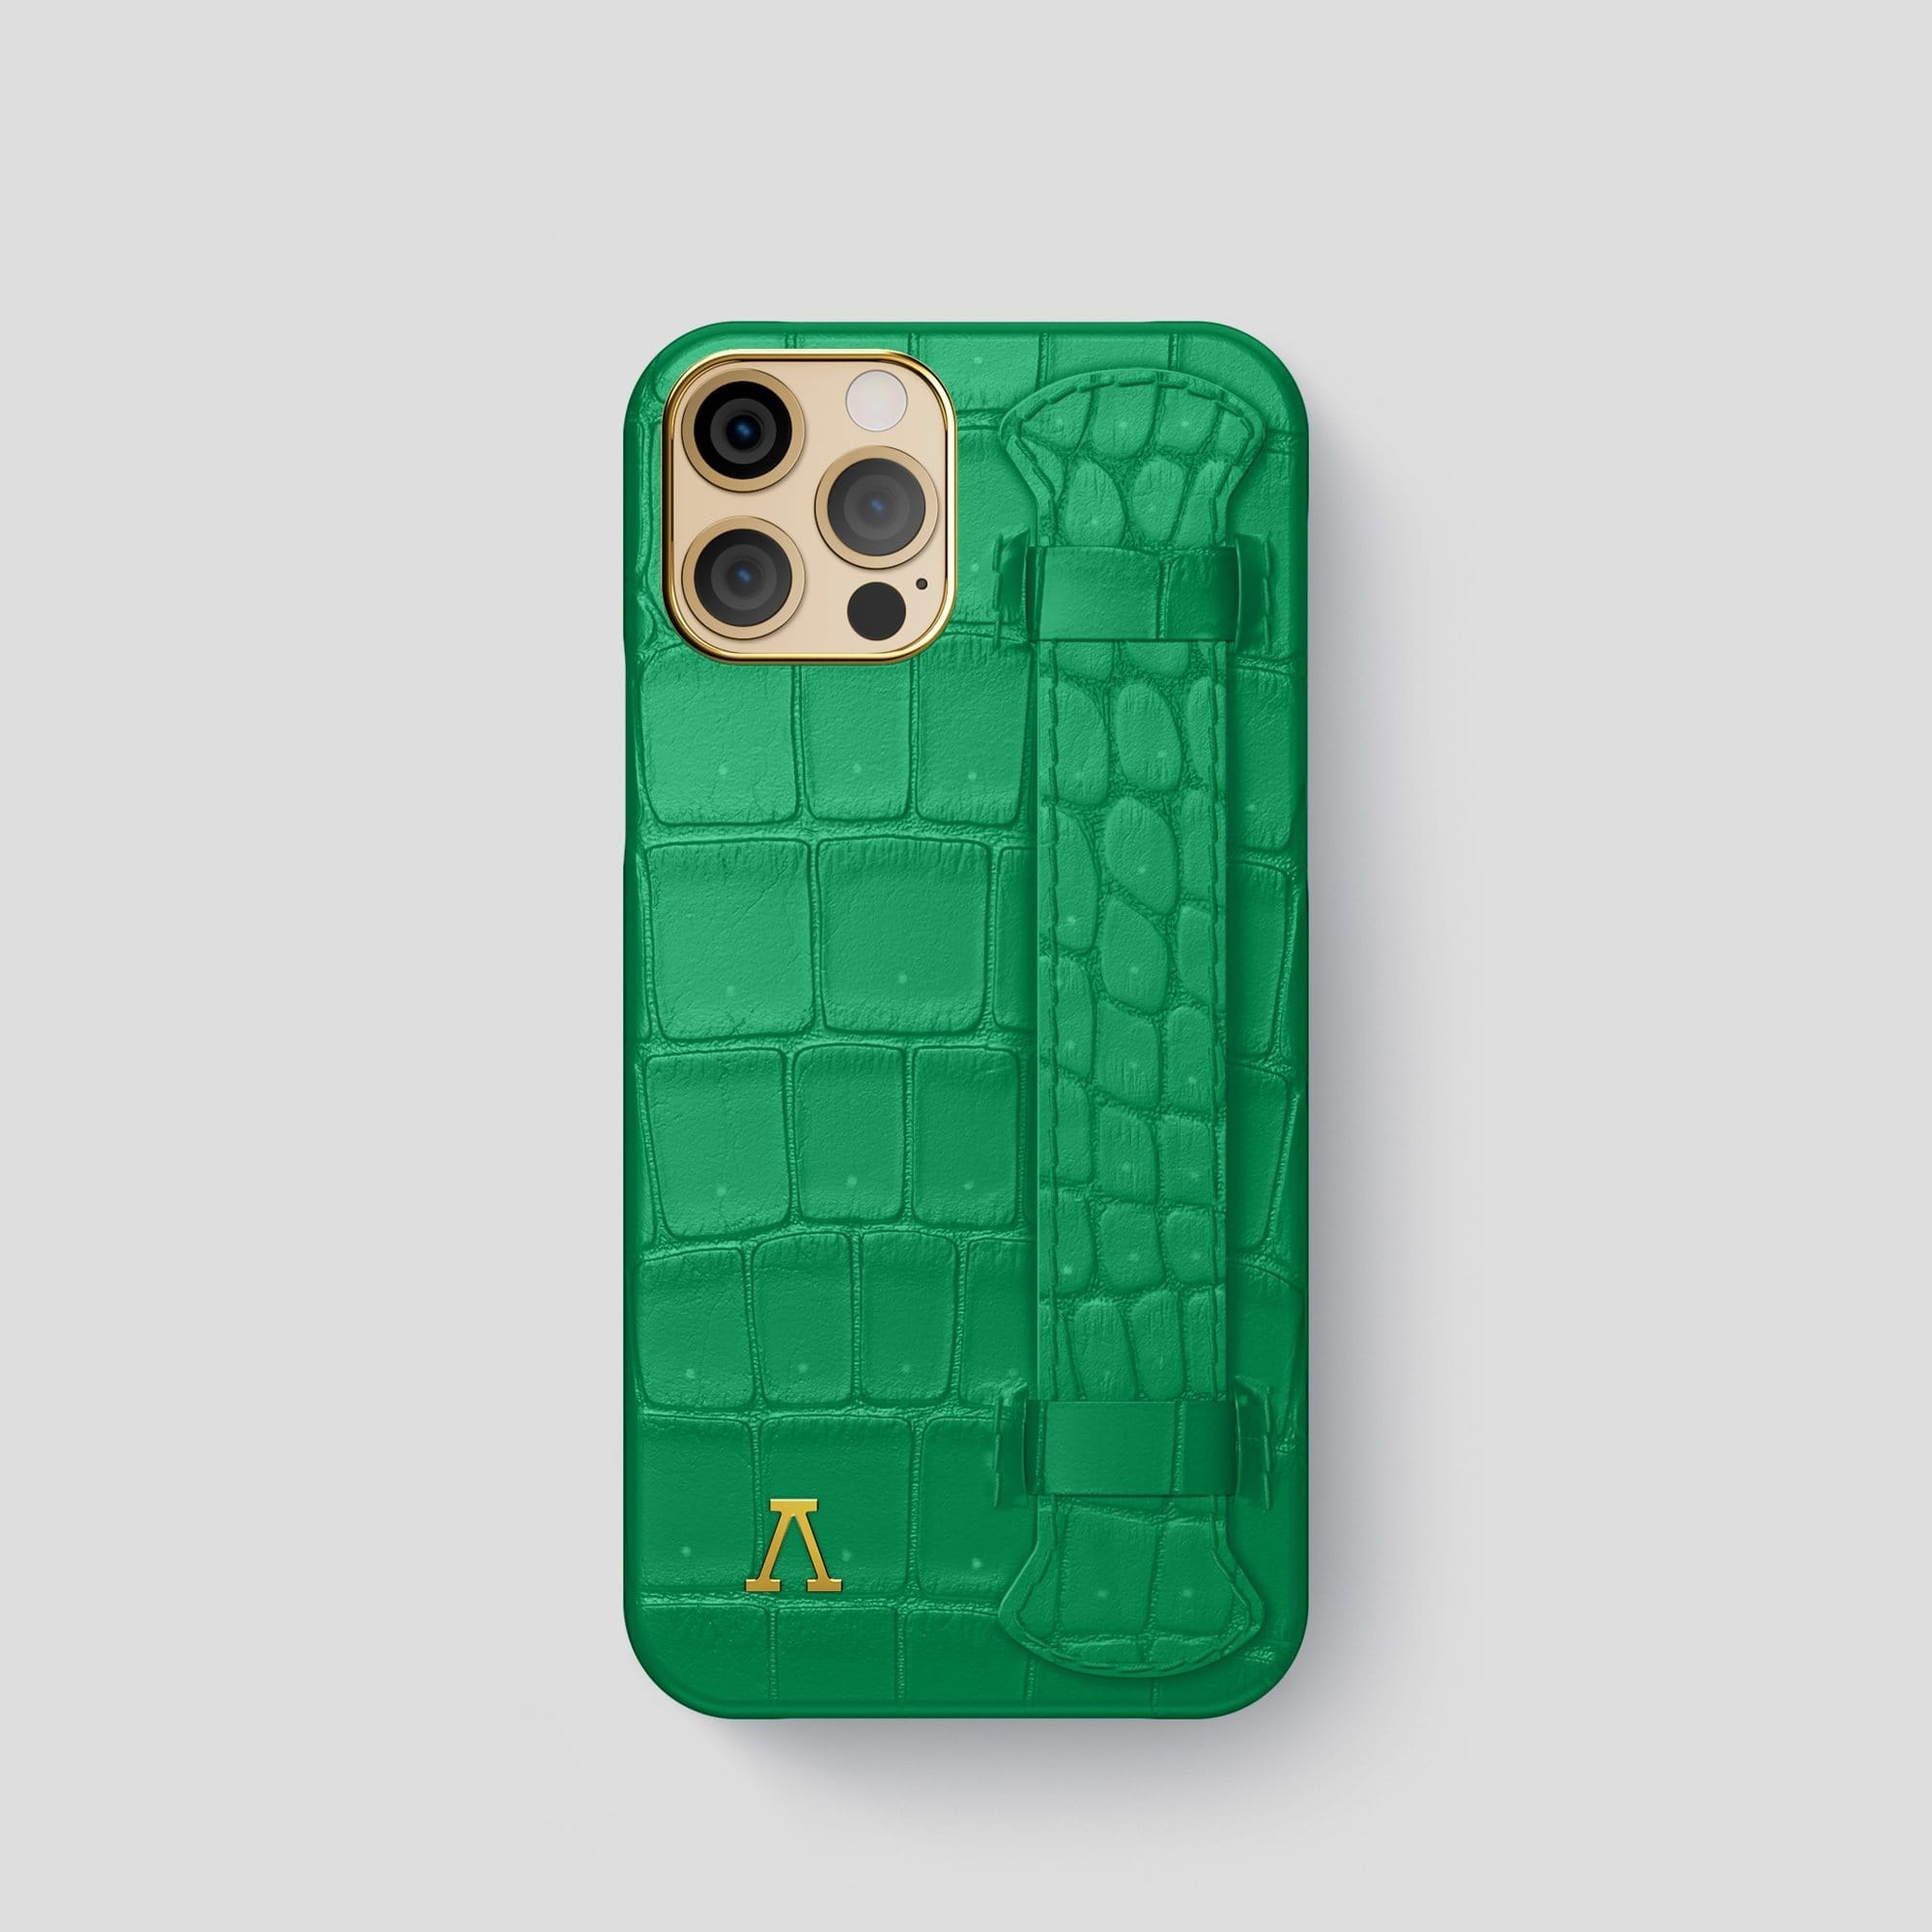 iPhone 12 Pro Strap Case Porosus Crocodile